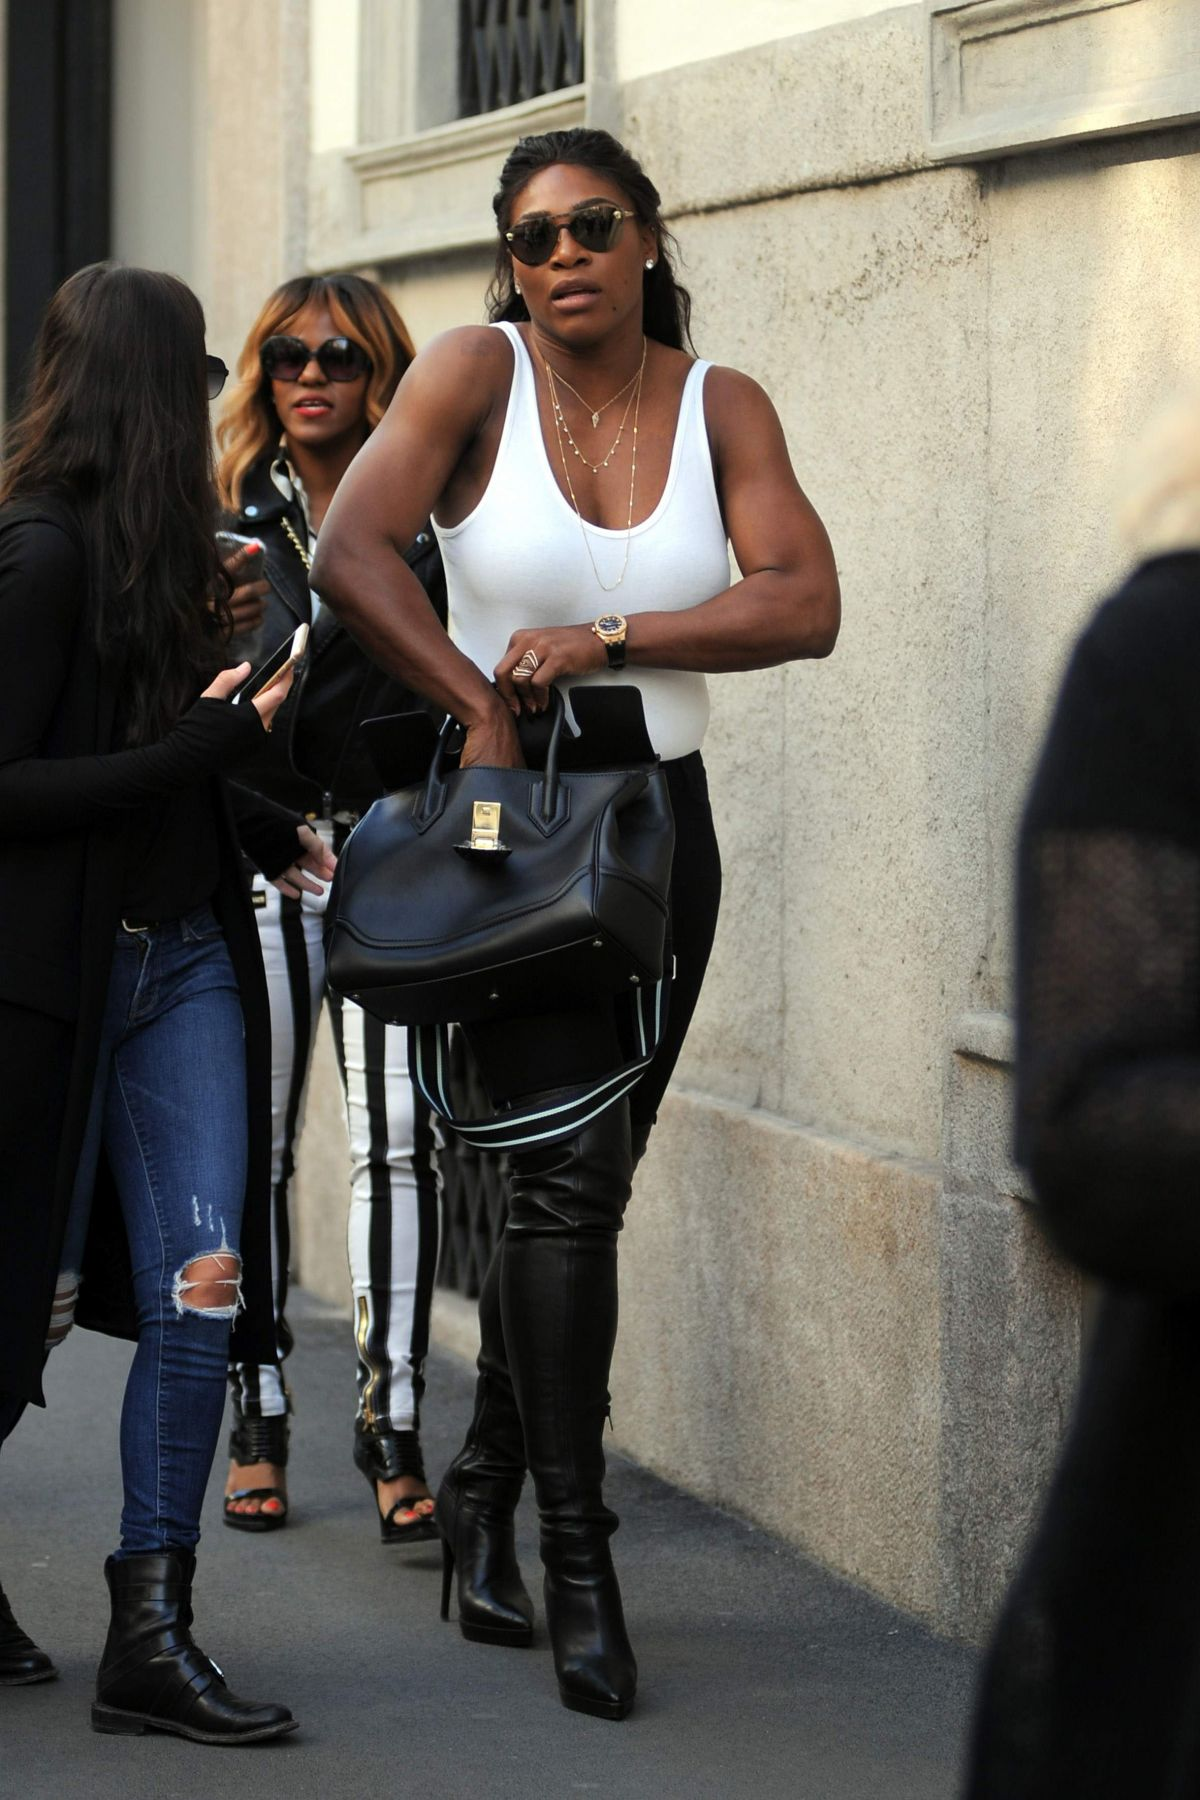 SERENA WILLIAMS Out and About in Milan During Fashion Week 09/22/2016